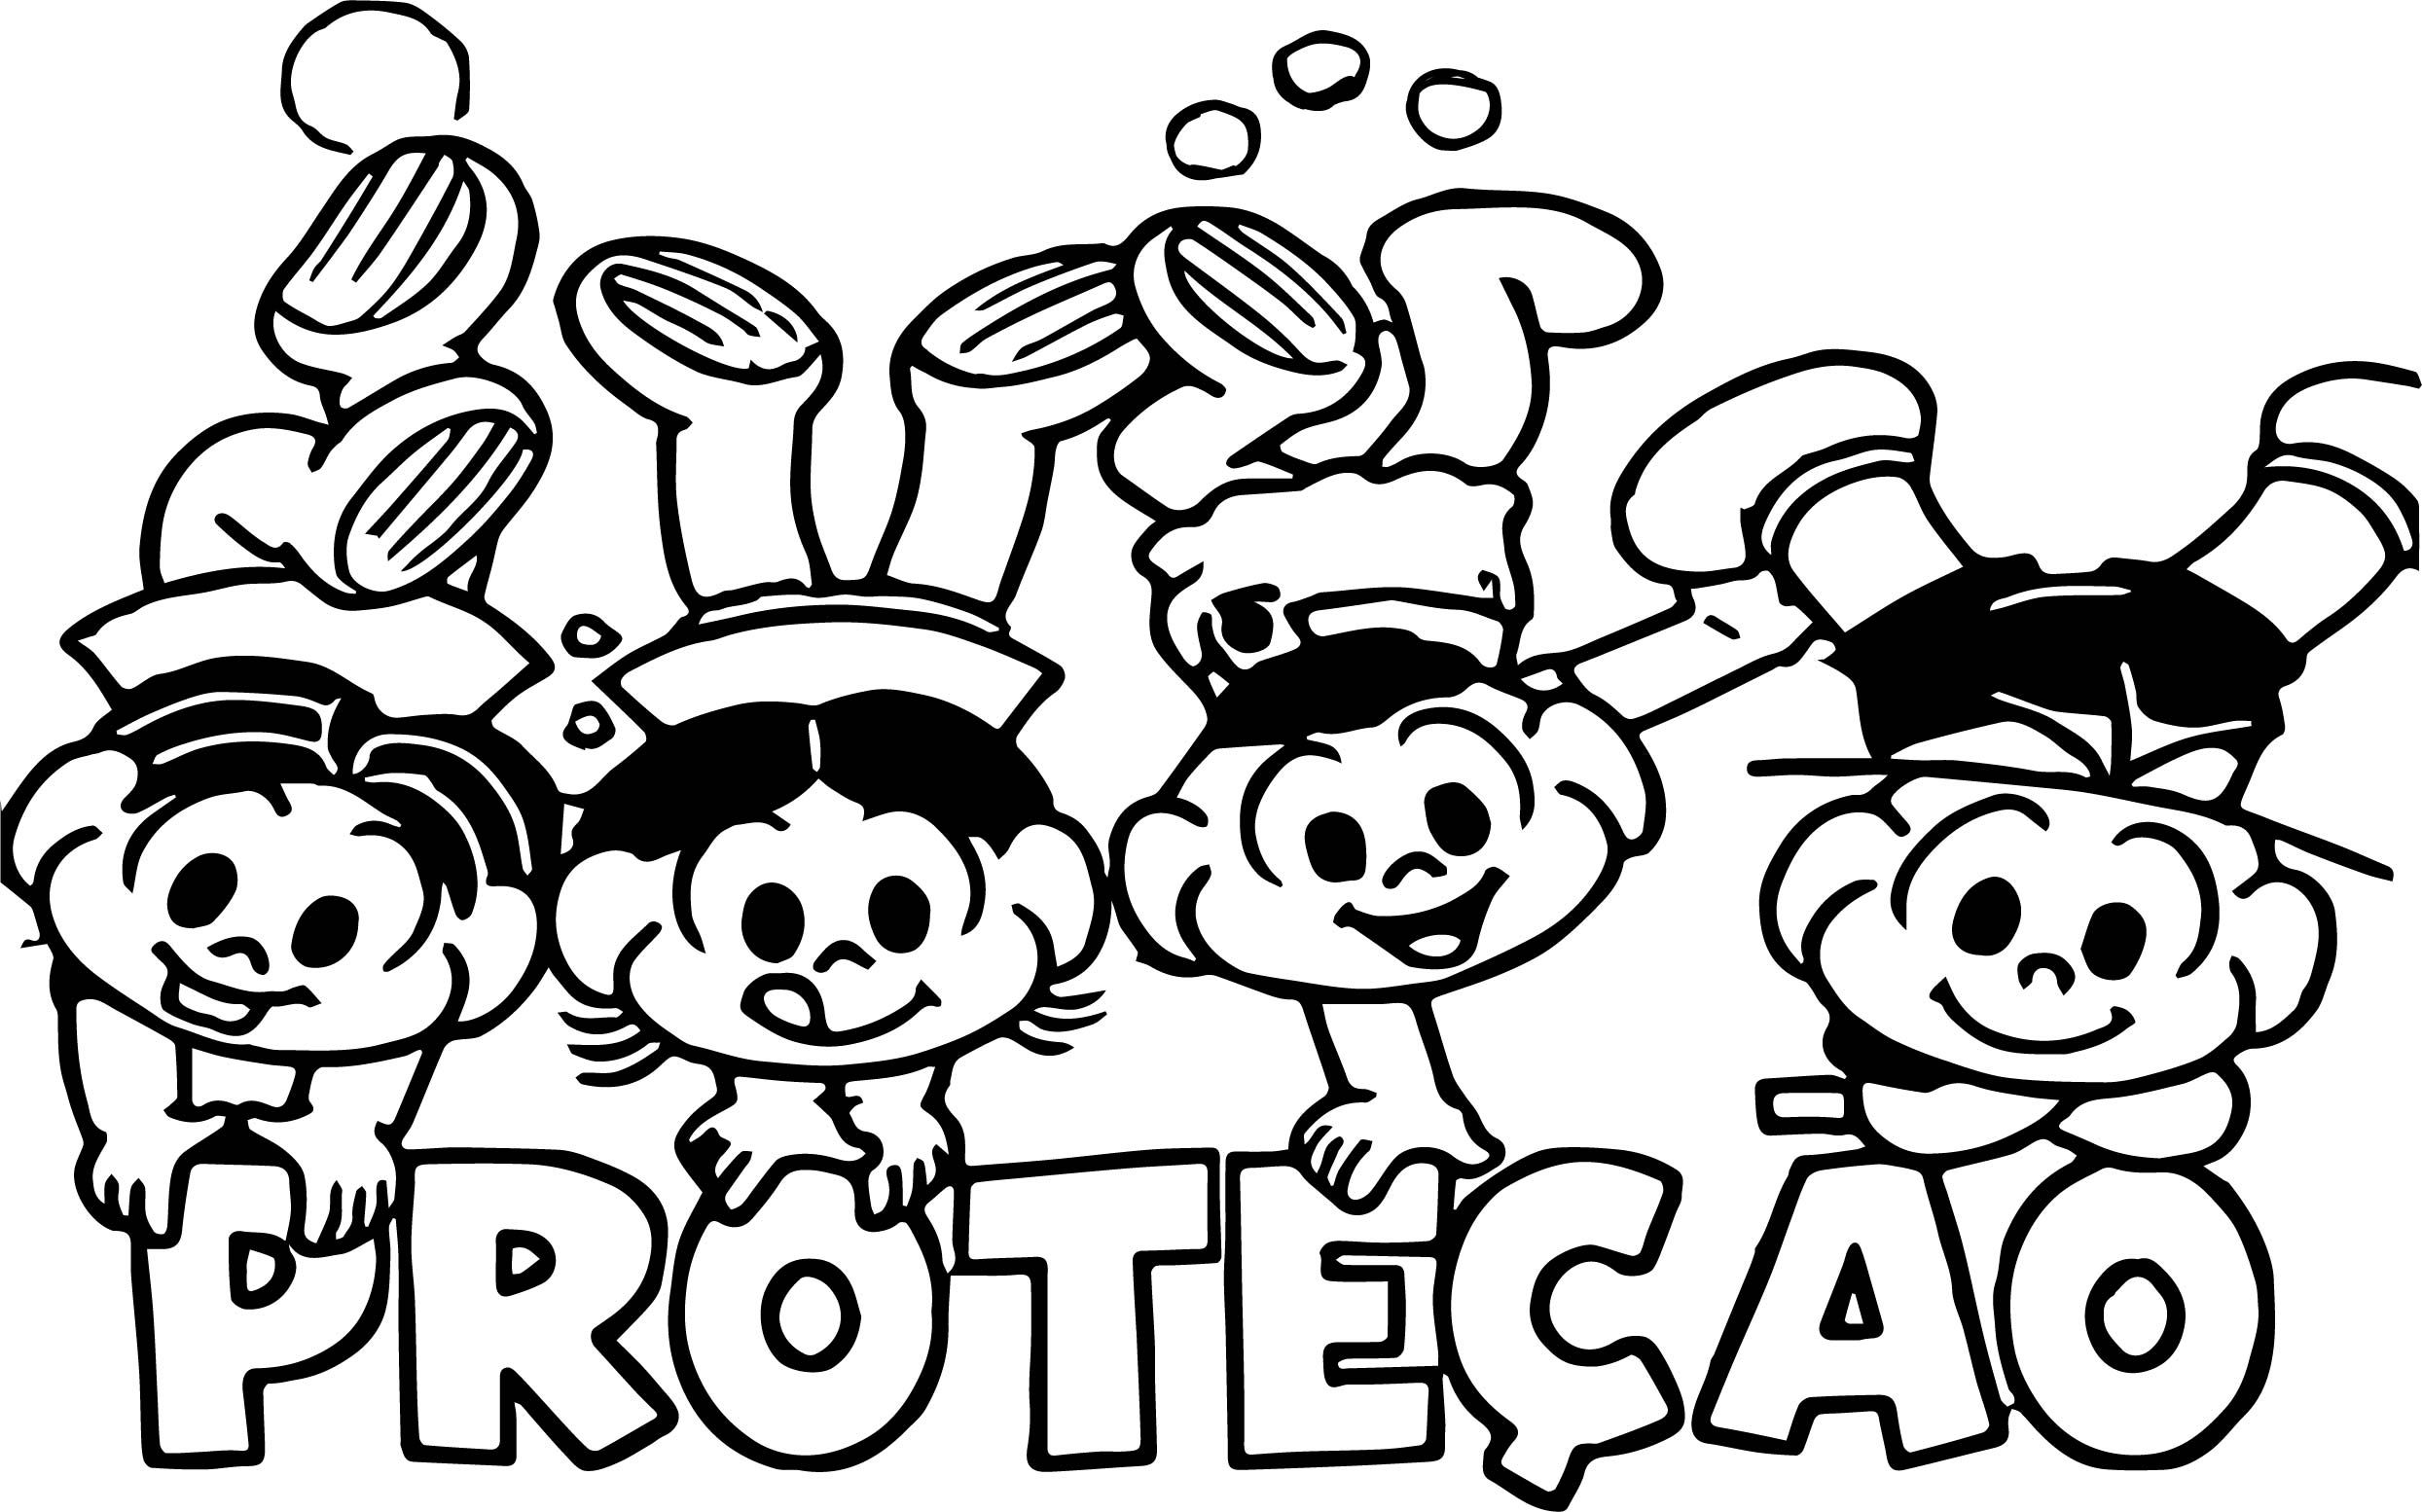 Cool A Turma Da Monica Coloring Page Coloring Pages For Boys